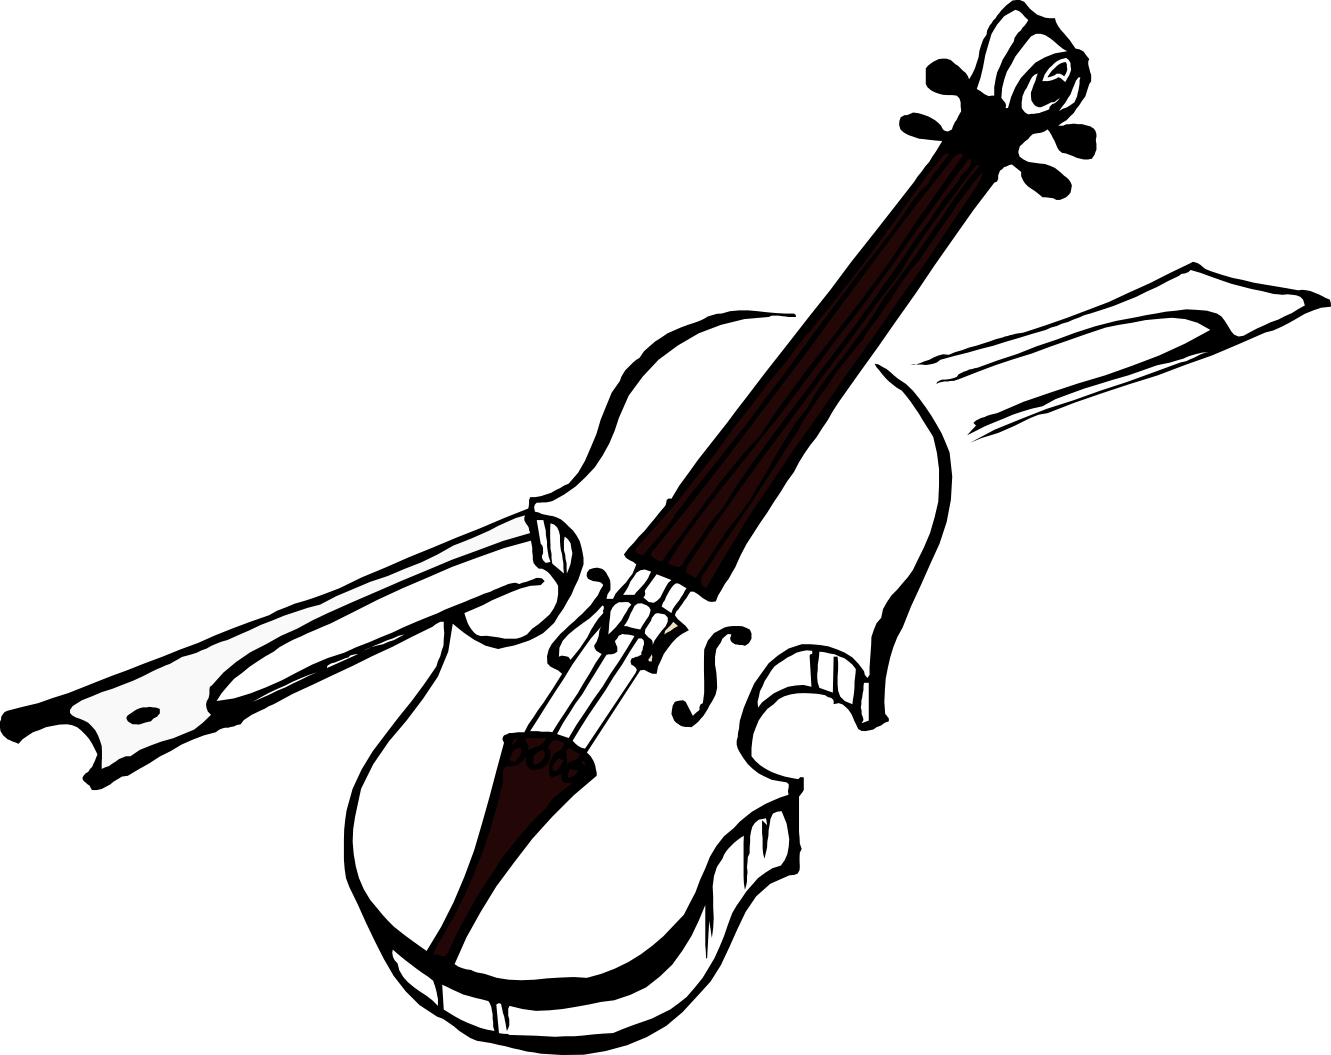 Orchestra drawing violin. Concert fiddle music entertainment